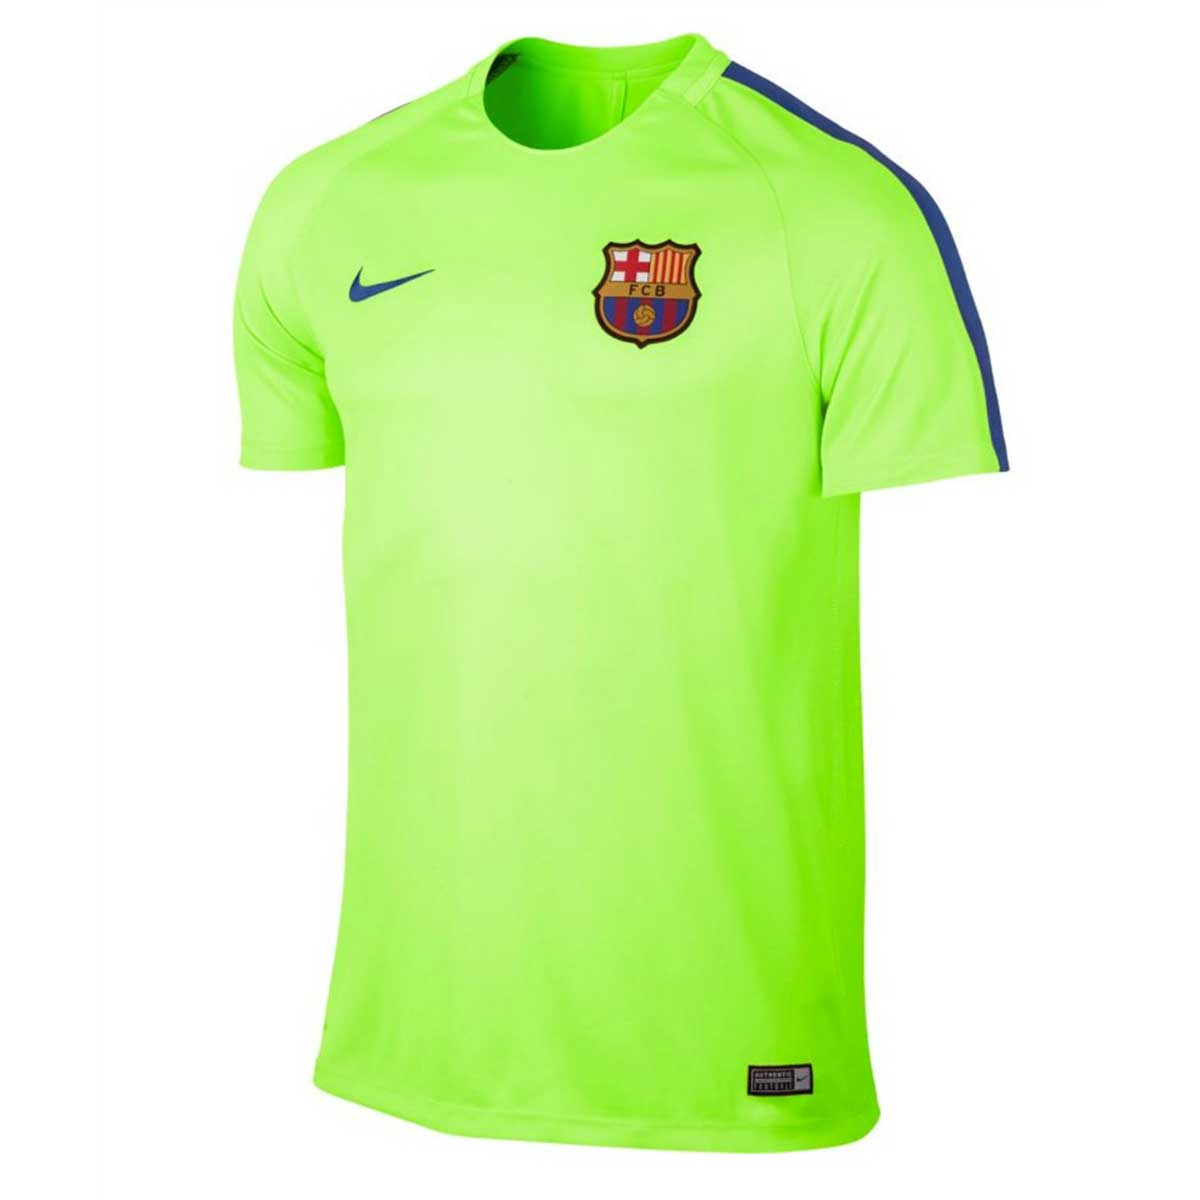 92faf9558cd Buy Nike FC Barcelona Jersey (Green) Online in India